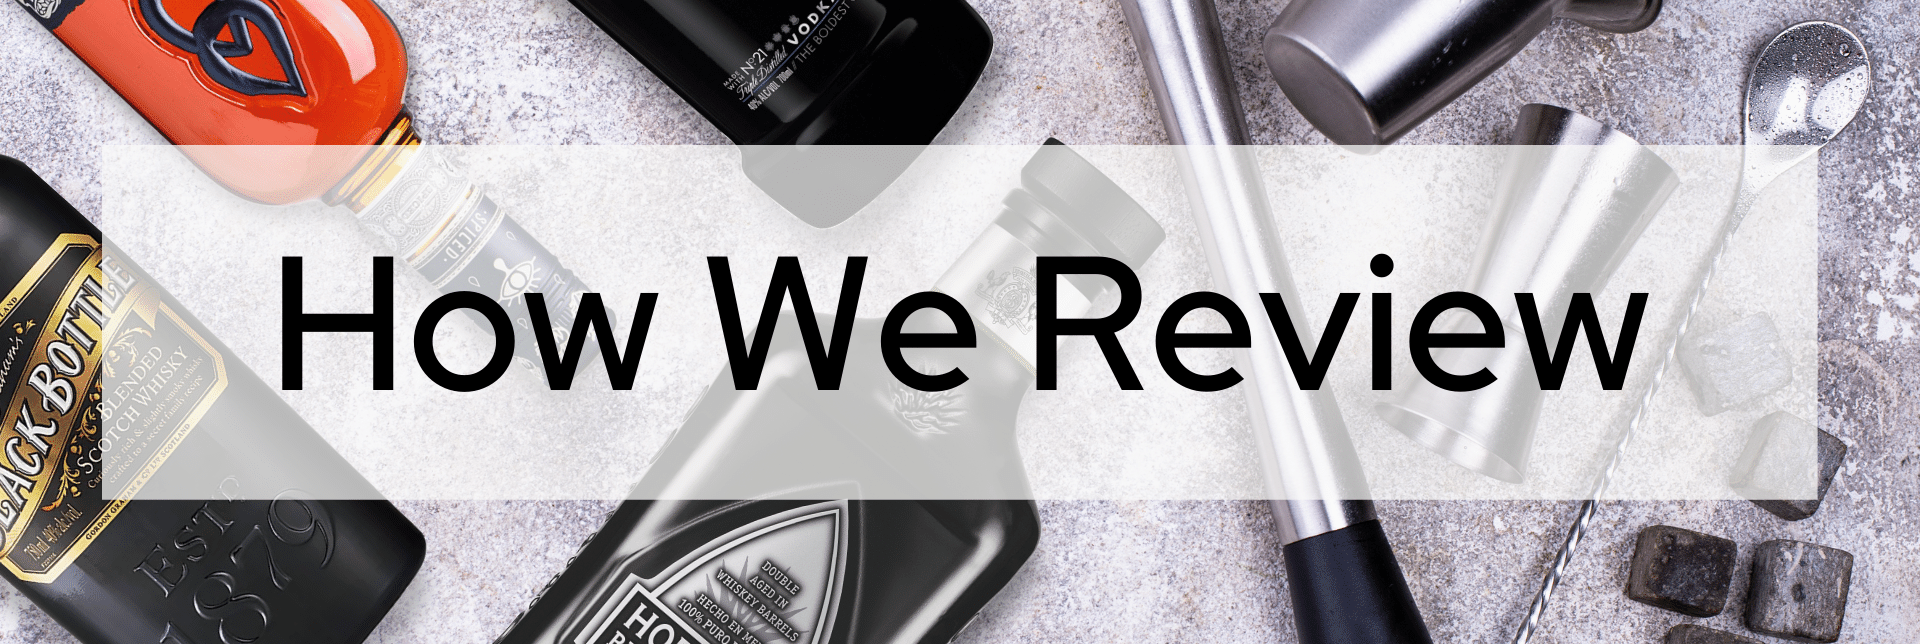 How we review products on our best articles